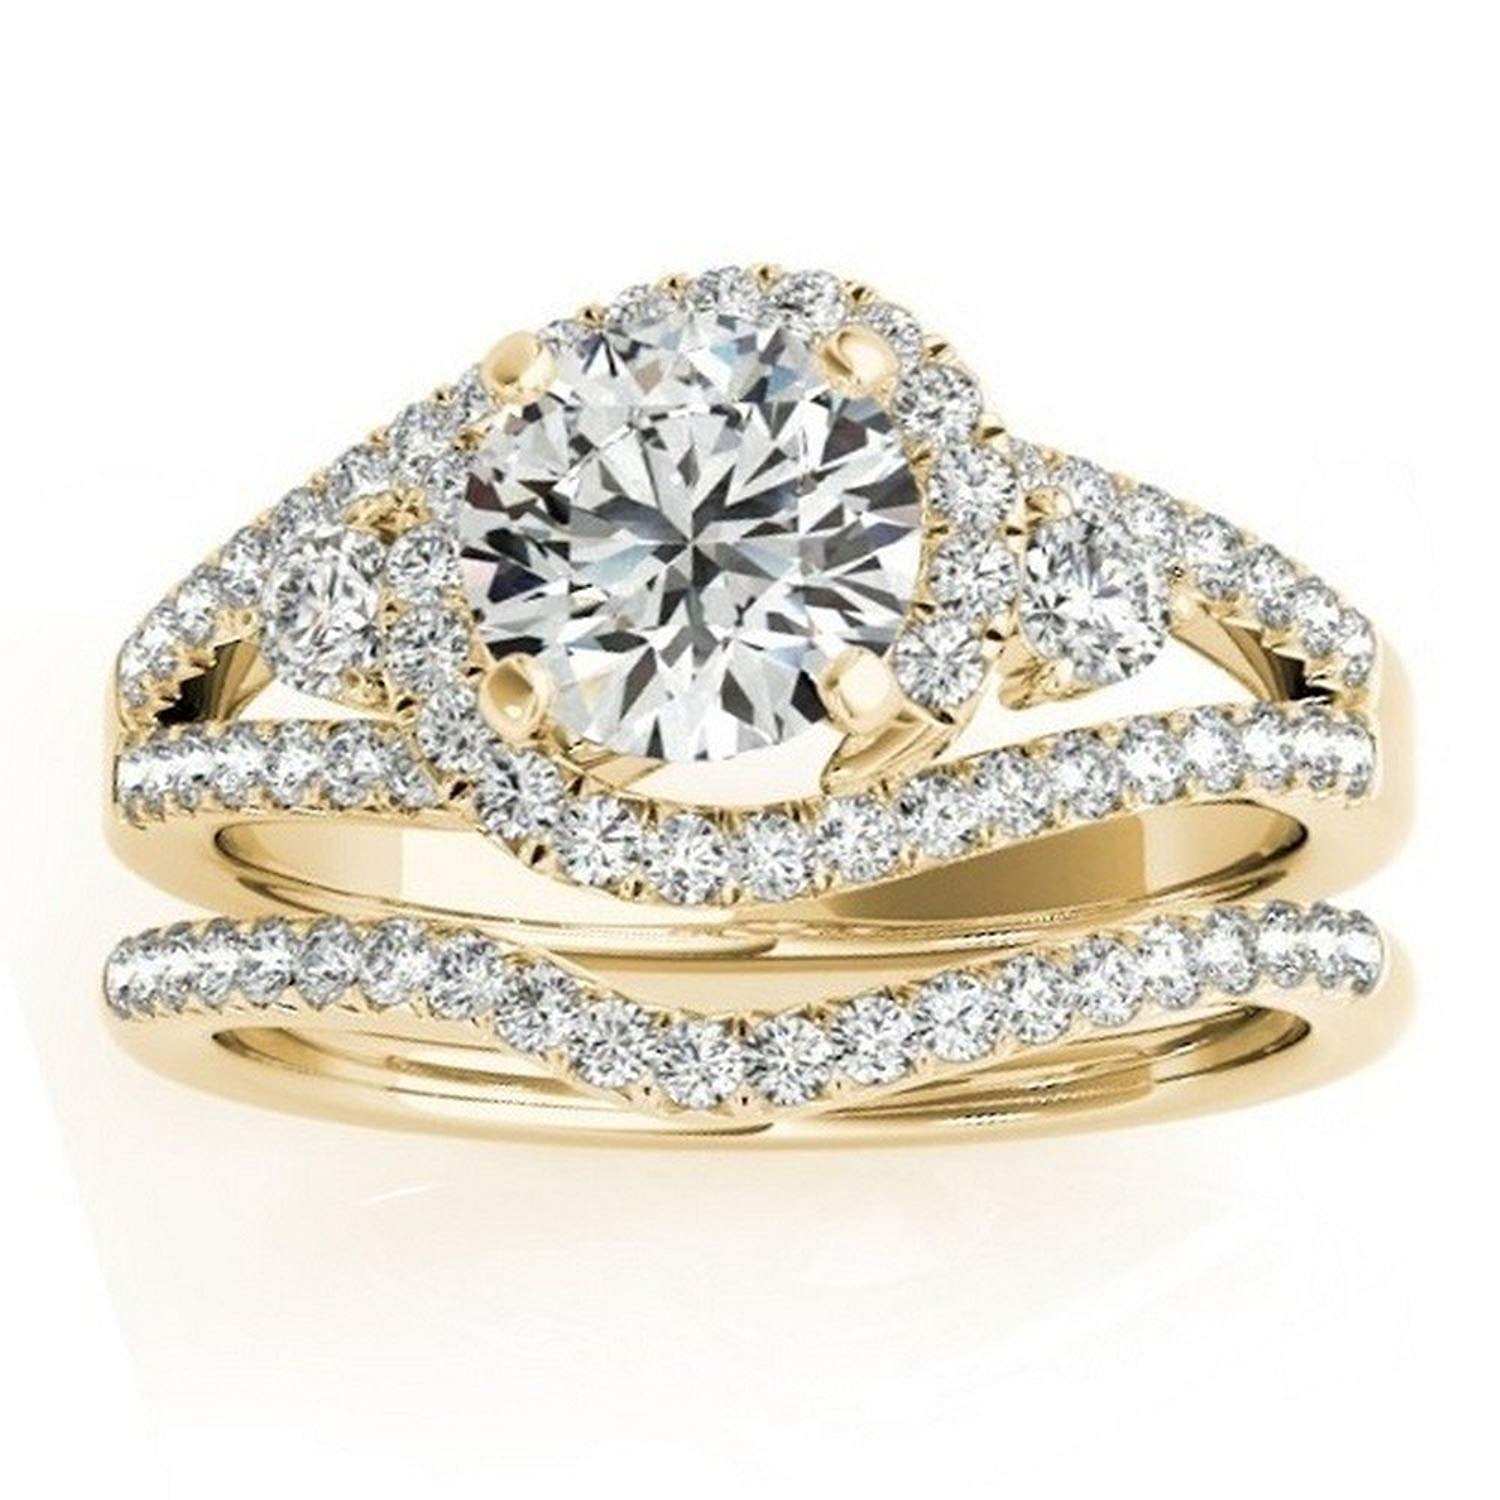 Halo Diamond Engagement Ring Setting and Contour Wedding Band Bridal Set in 14k Yellow Gold 1.00ct